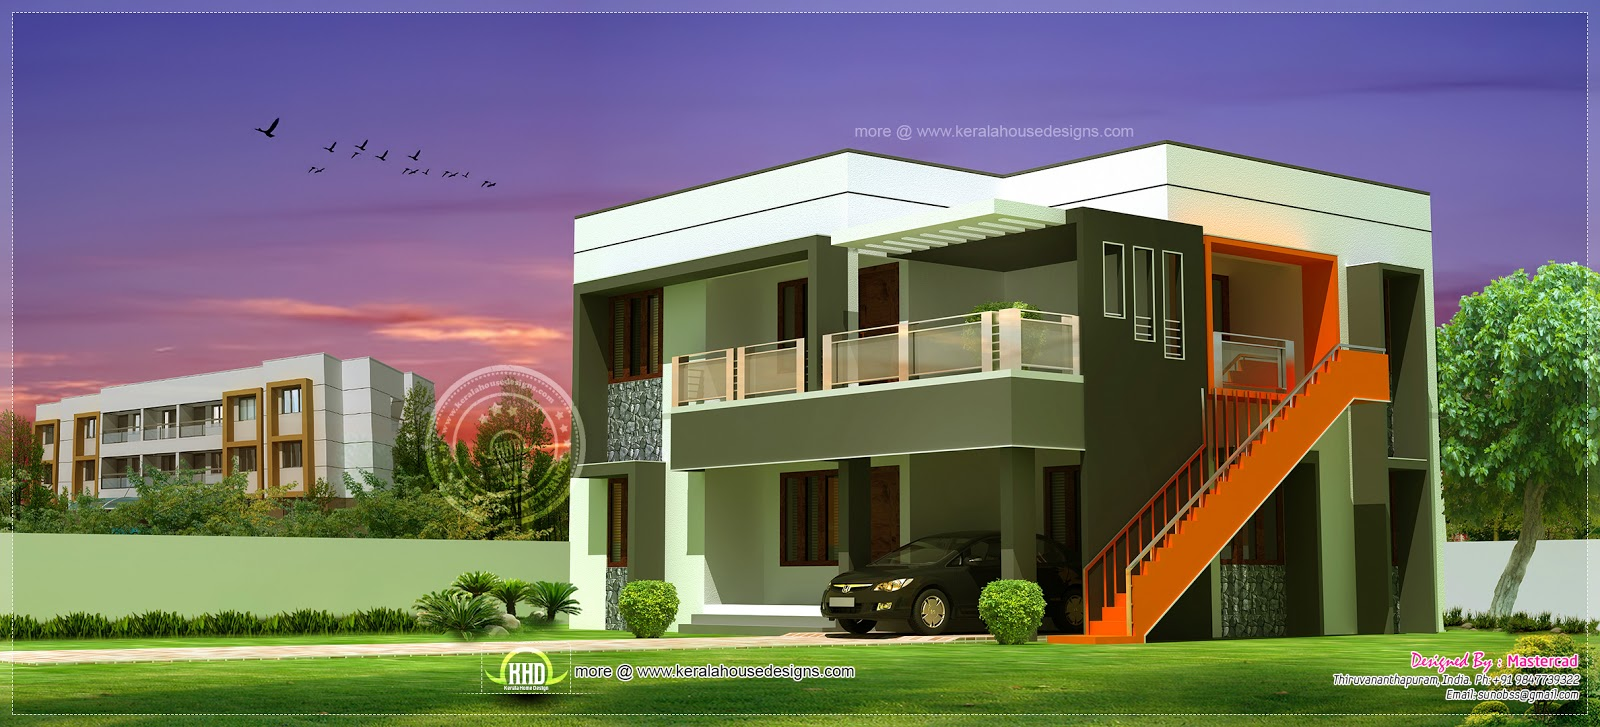 1811 Square Feet Contemporary House Exterior Kerala Home